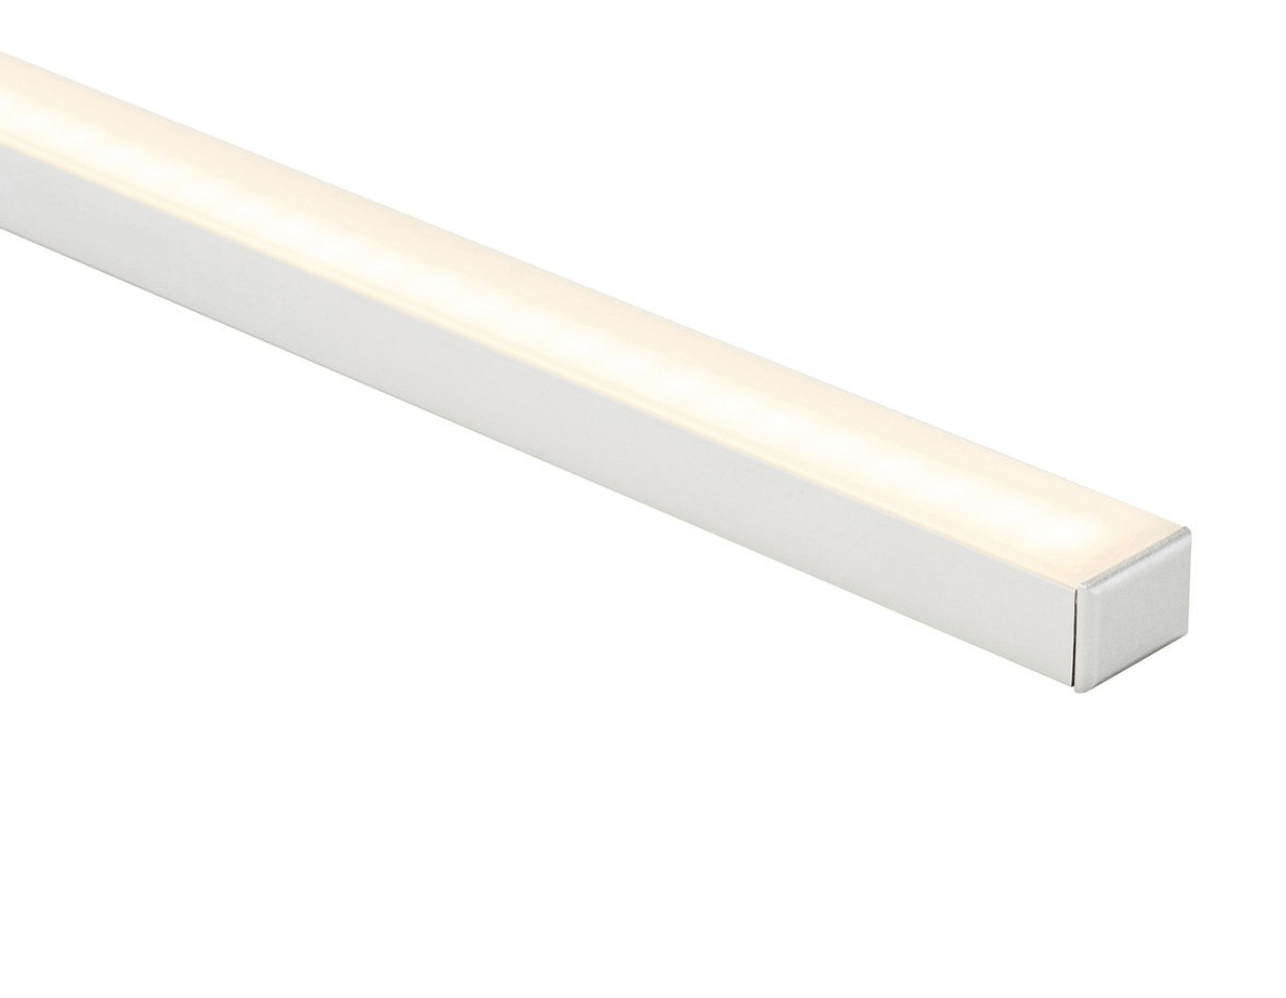 Profiles Surface Mounted Profile - Deep Square - HV9693-1922 lighting shops lighting stores LED lights  lighting designer